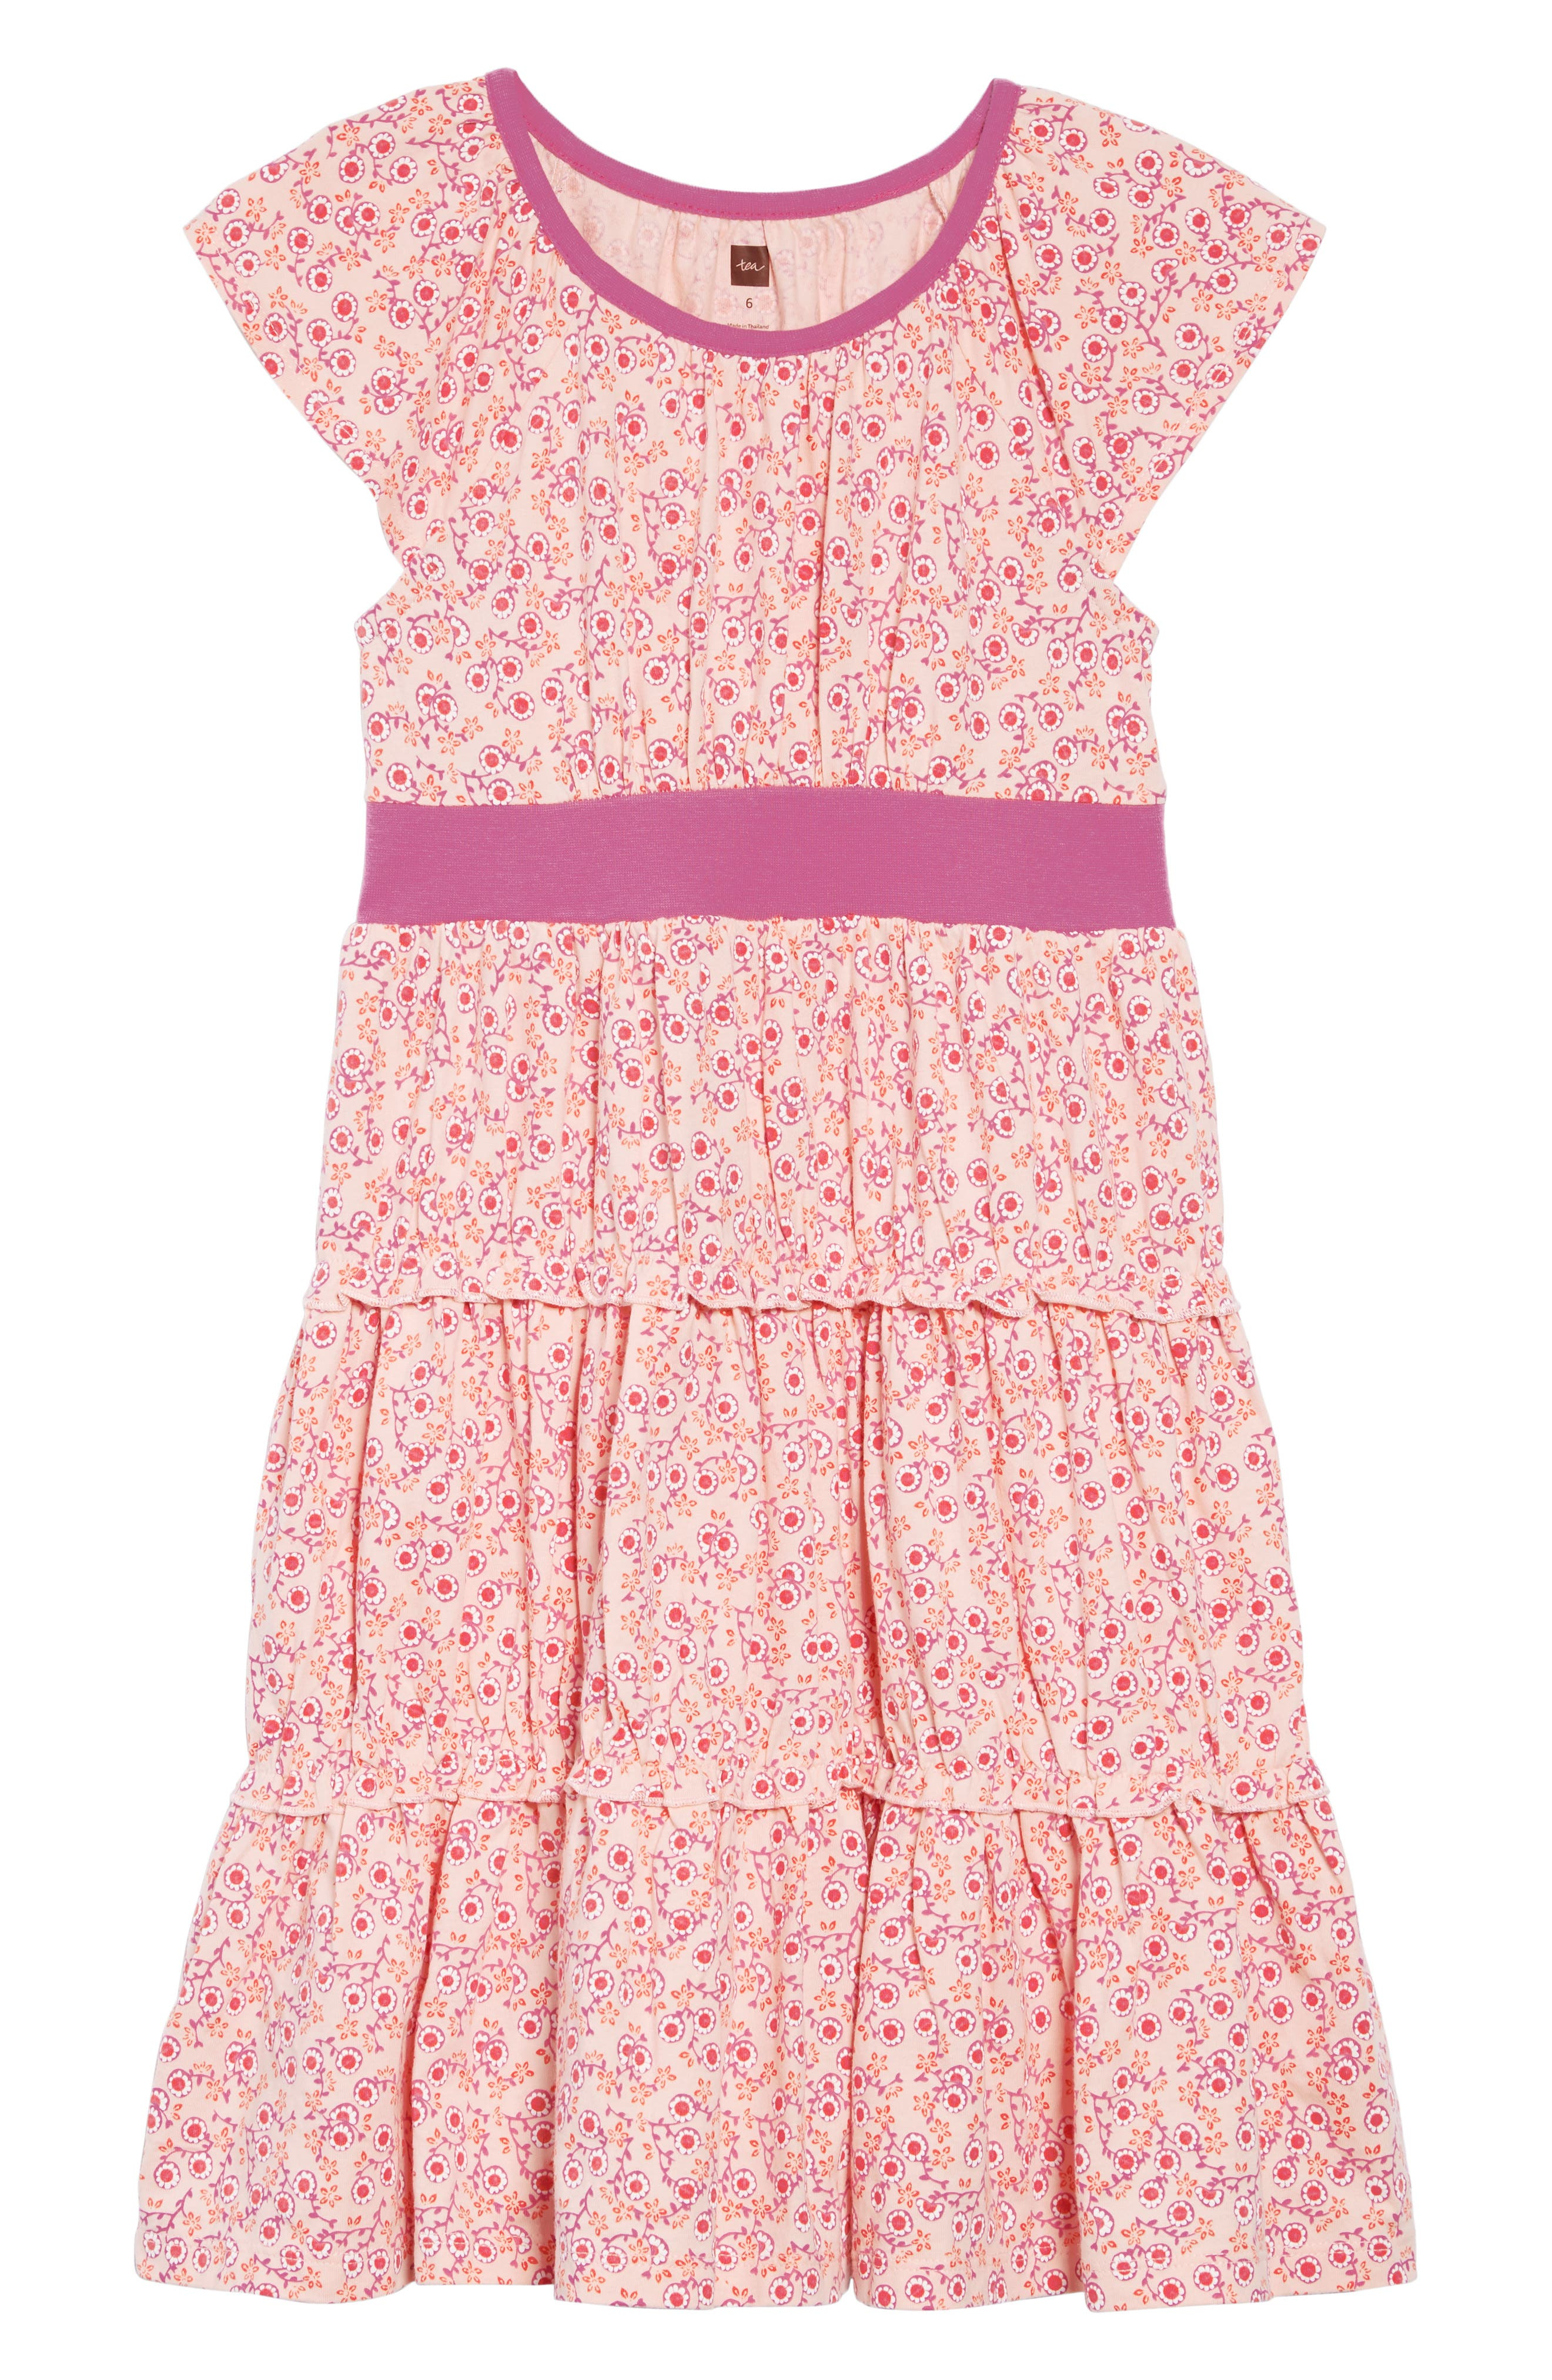 Pink Dress for Girls